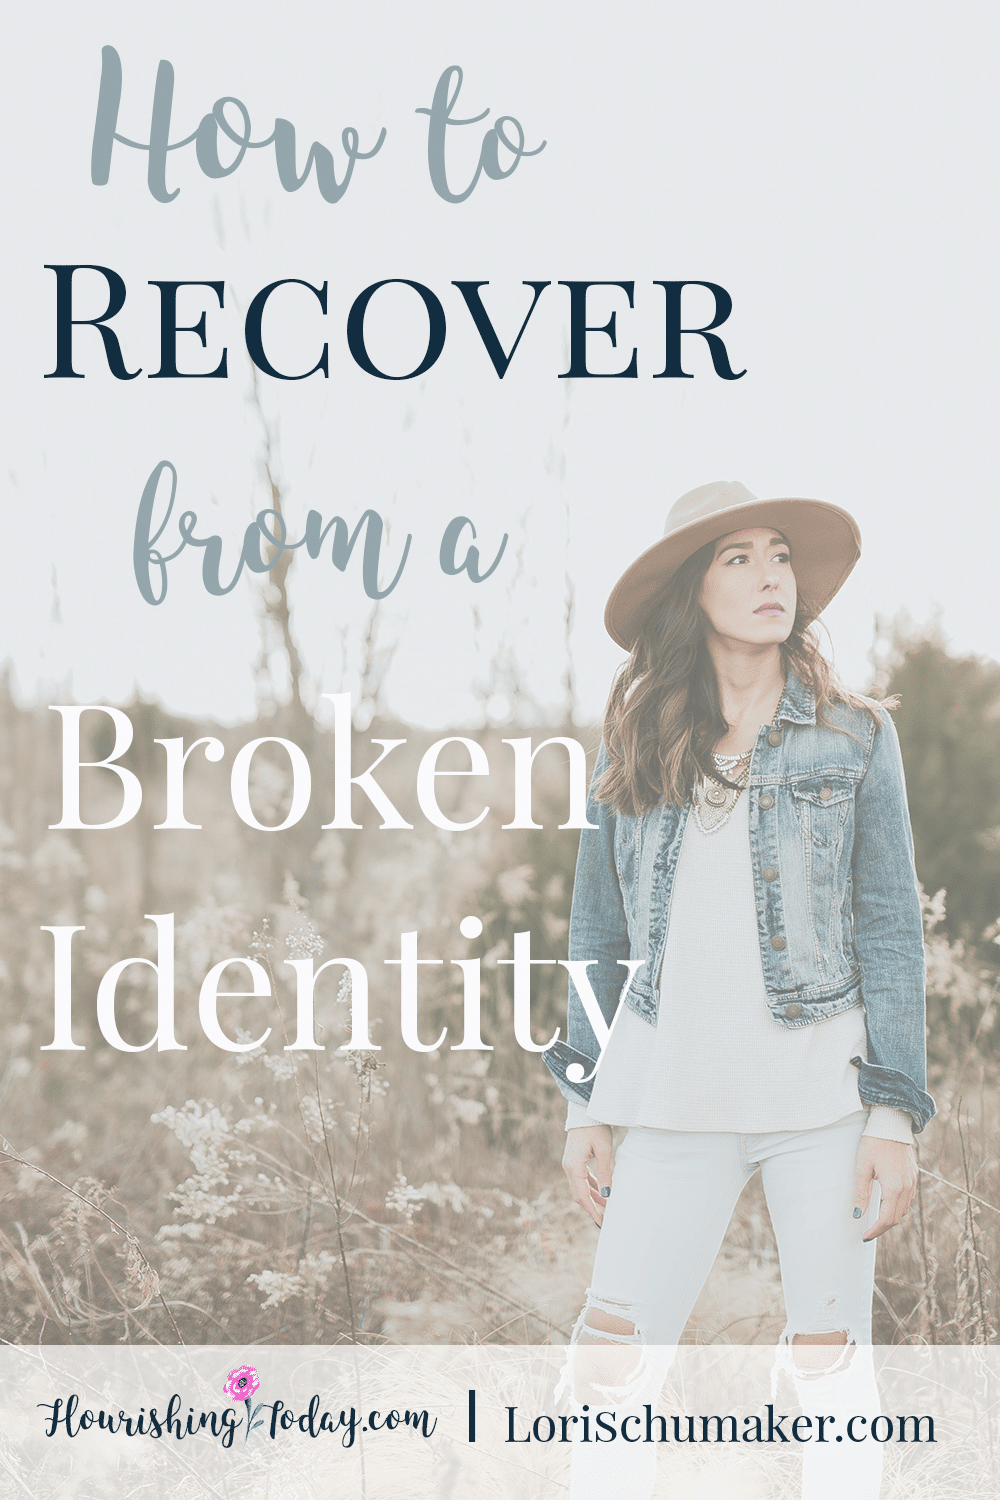 Are you suffering from a broken identity? There is hope! Jesus died to give you a secure identity in Him. Find out how to recover from a broken identity.